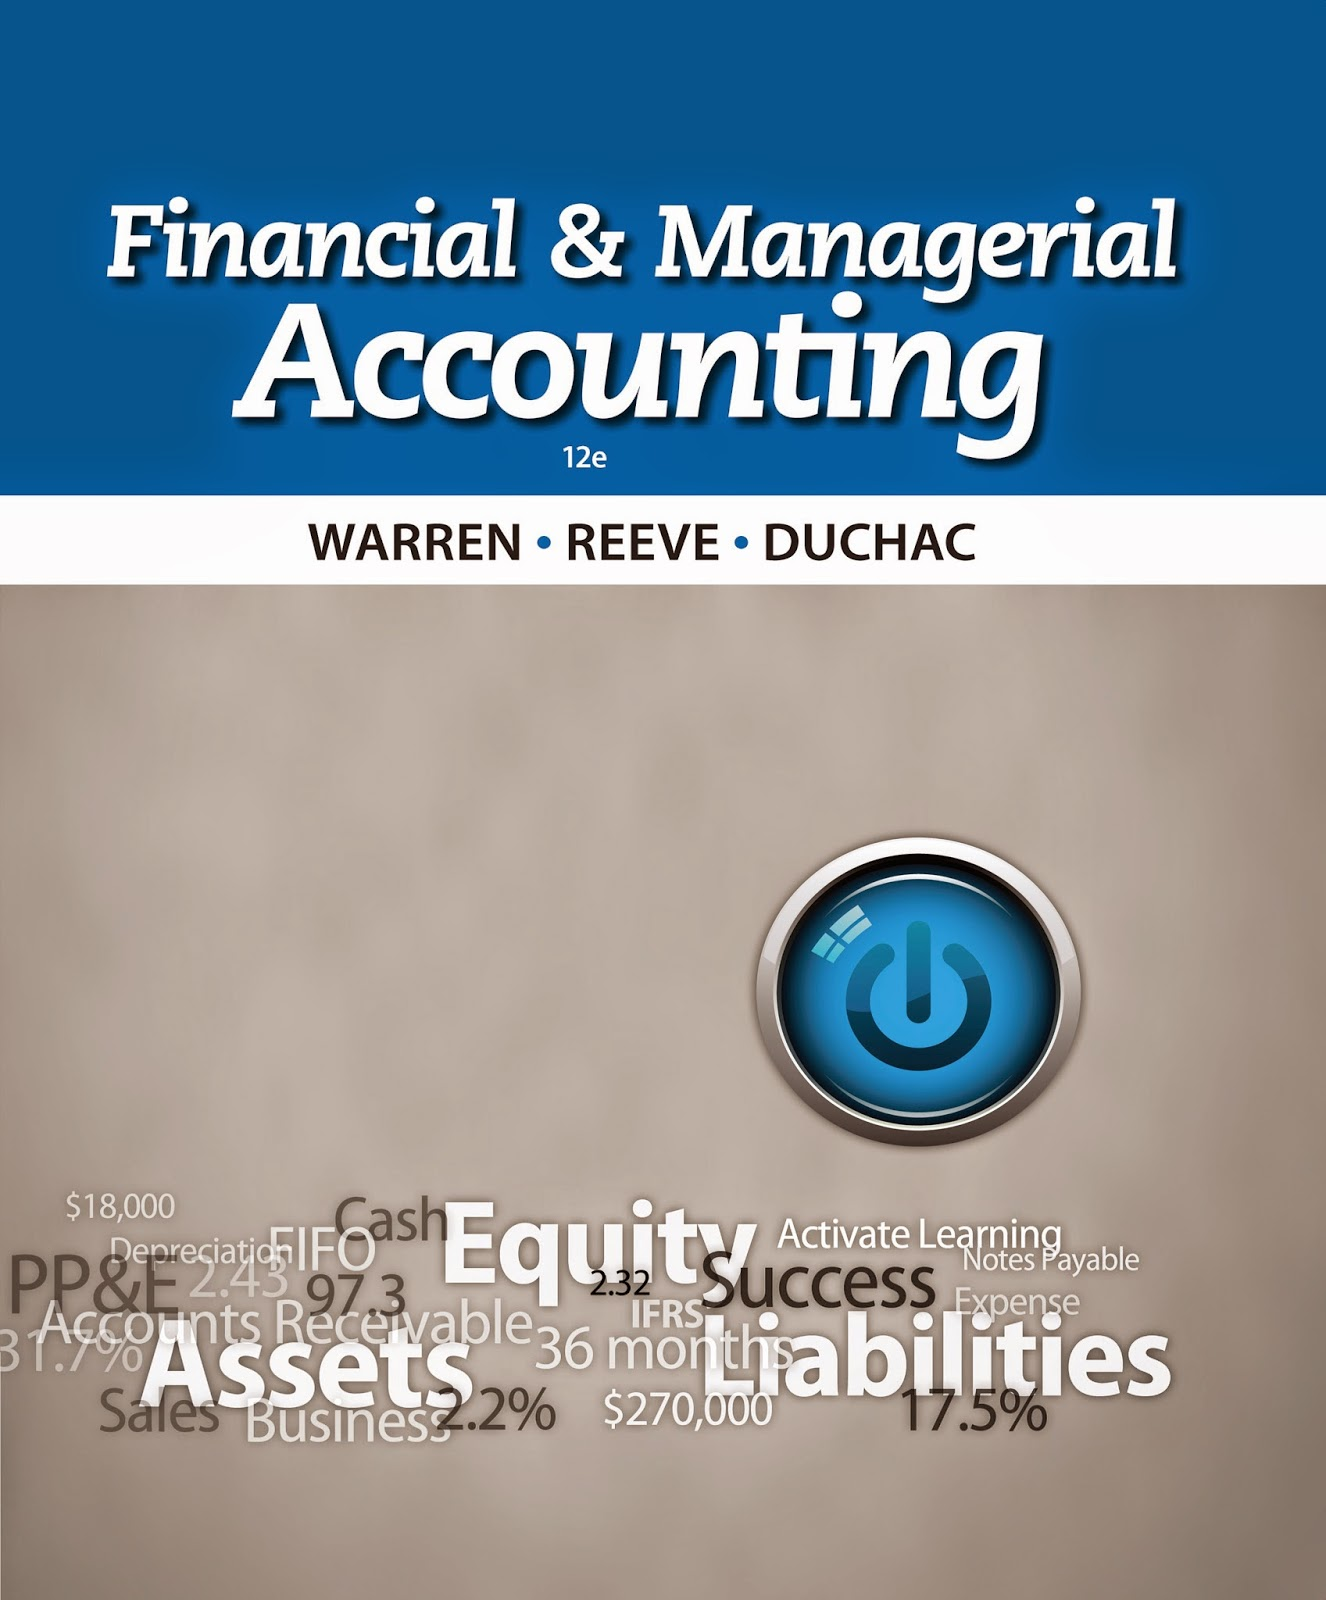 http://www.kingcheapebooks.com/2014/07/financial-managerial-accounting.html